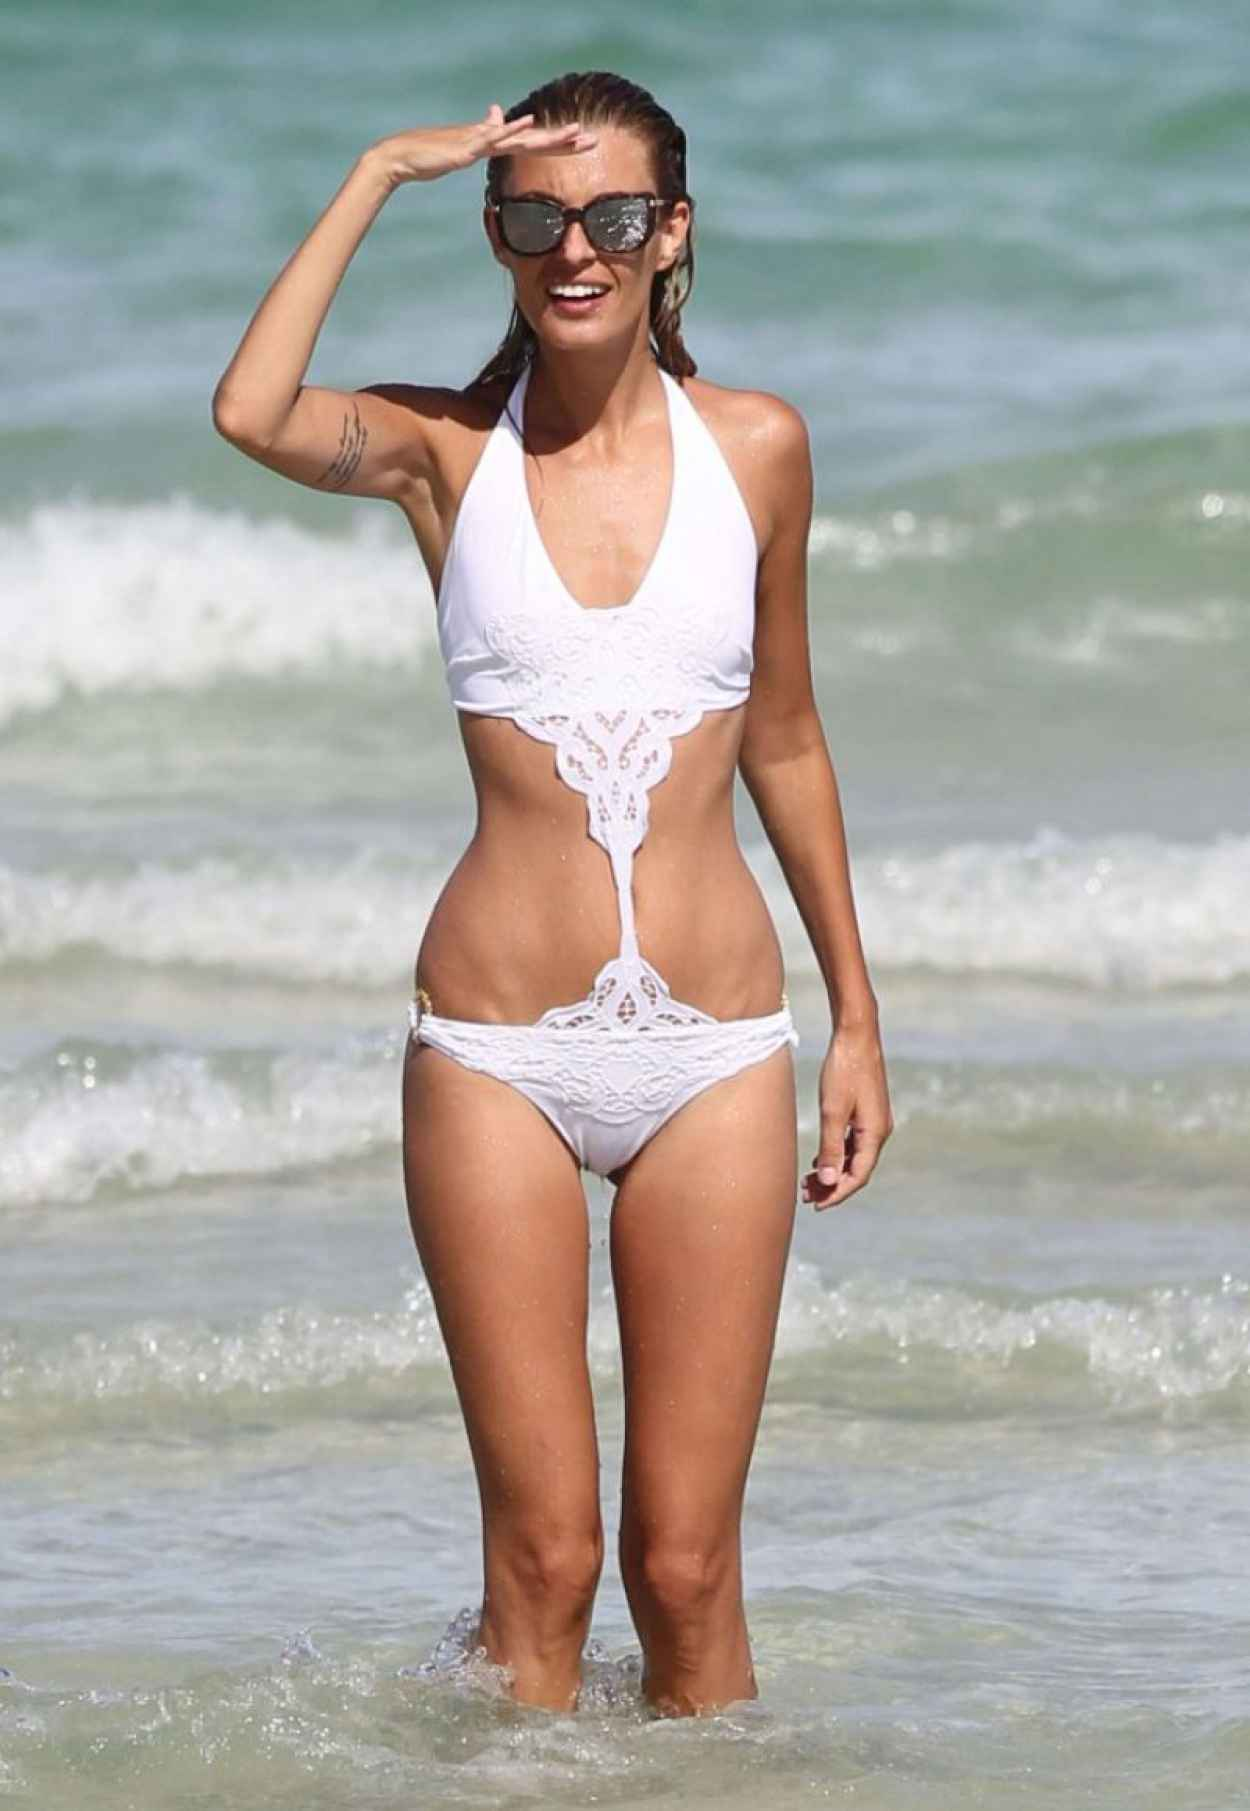 sveva alviti in a bikini on miami beach august 2015